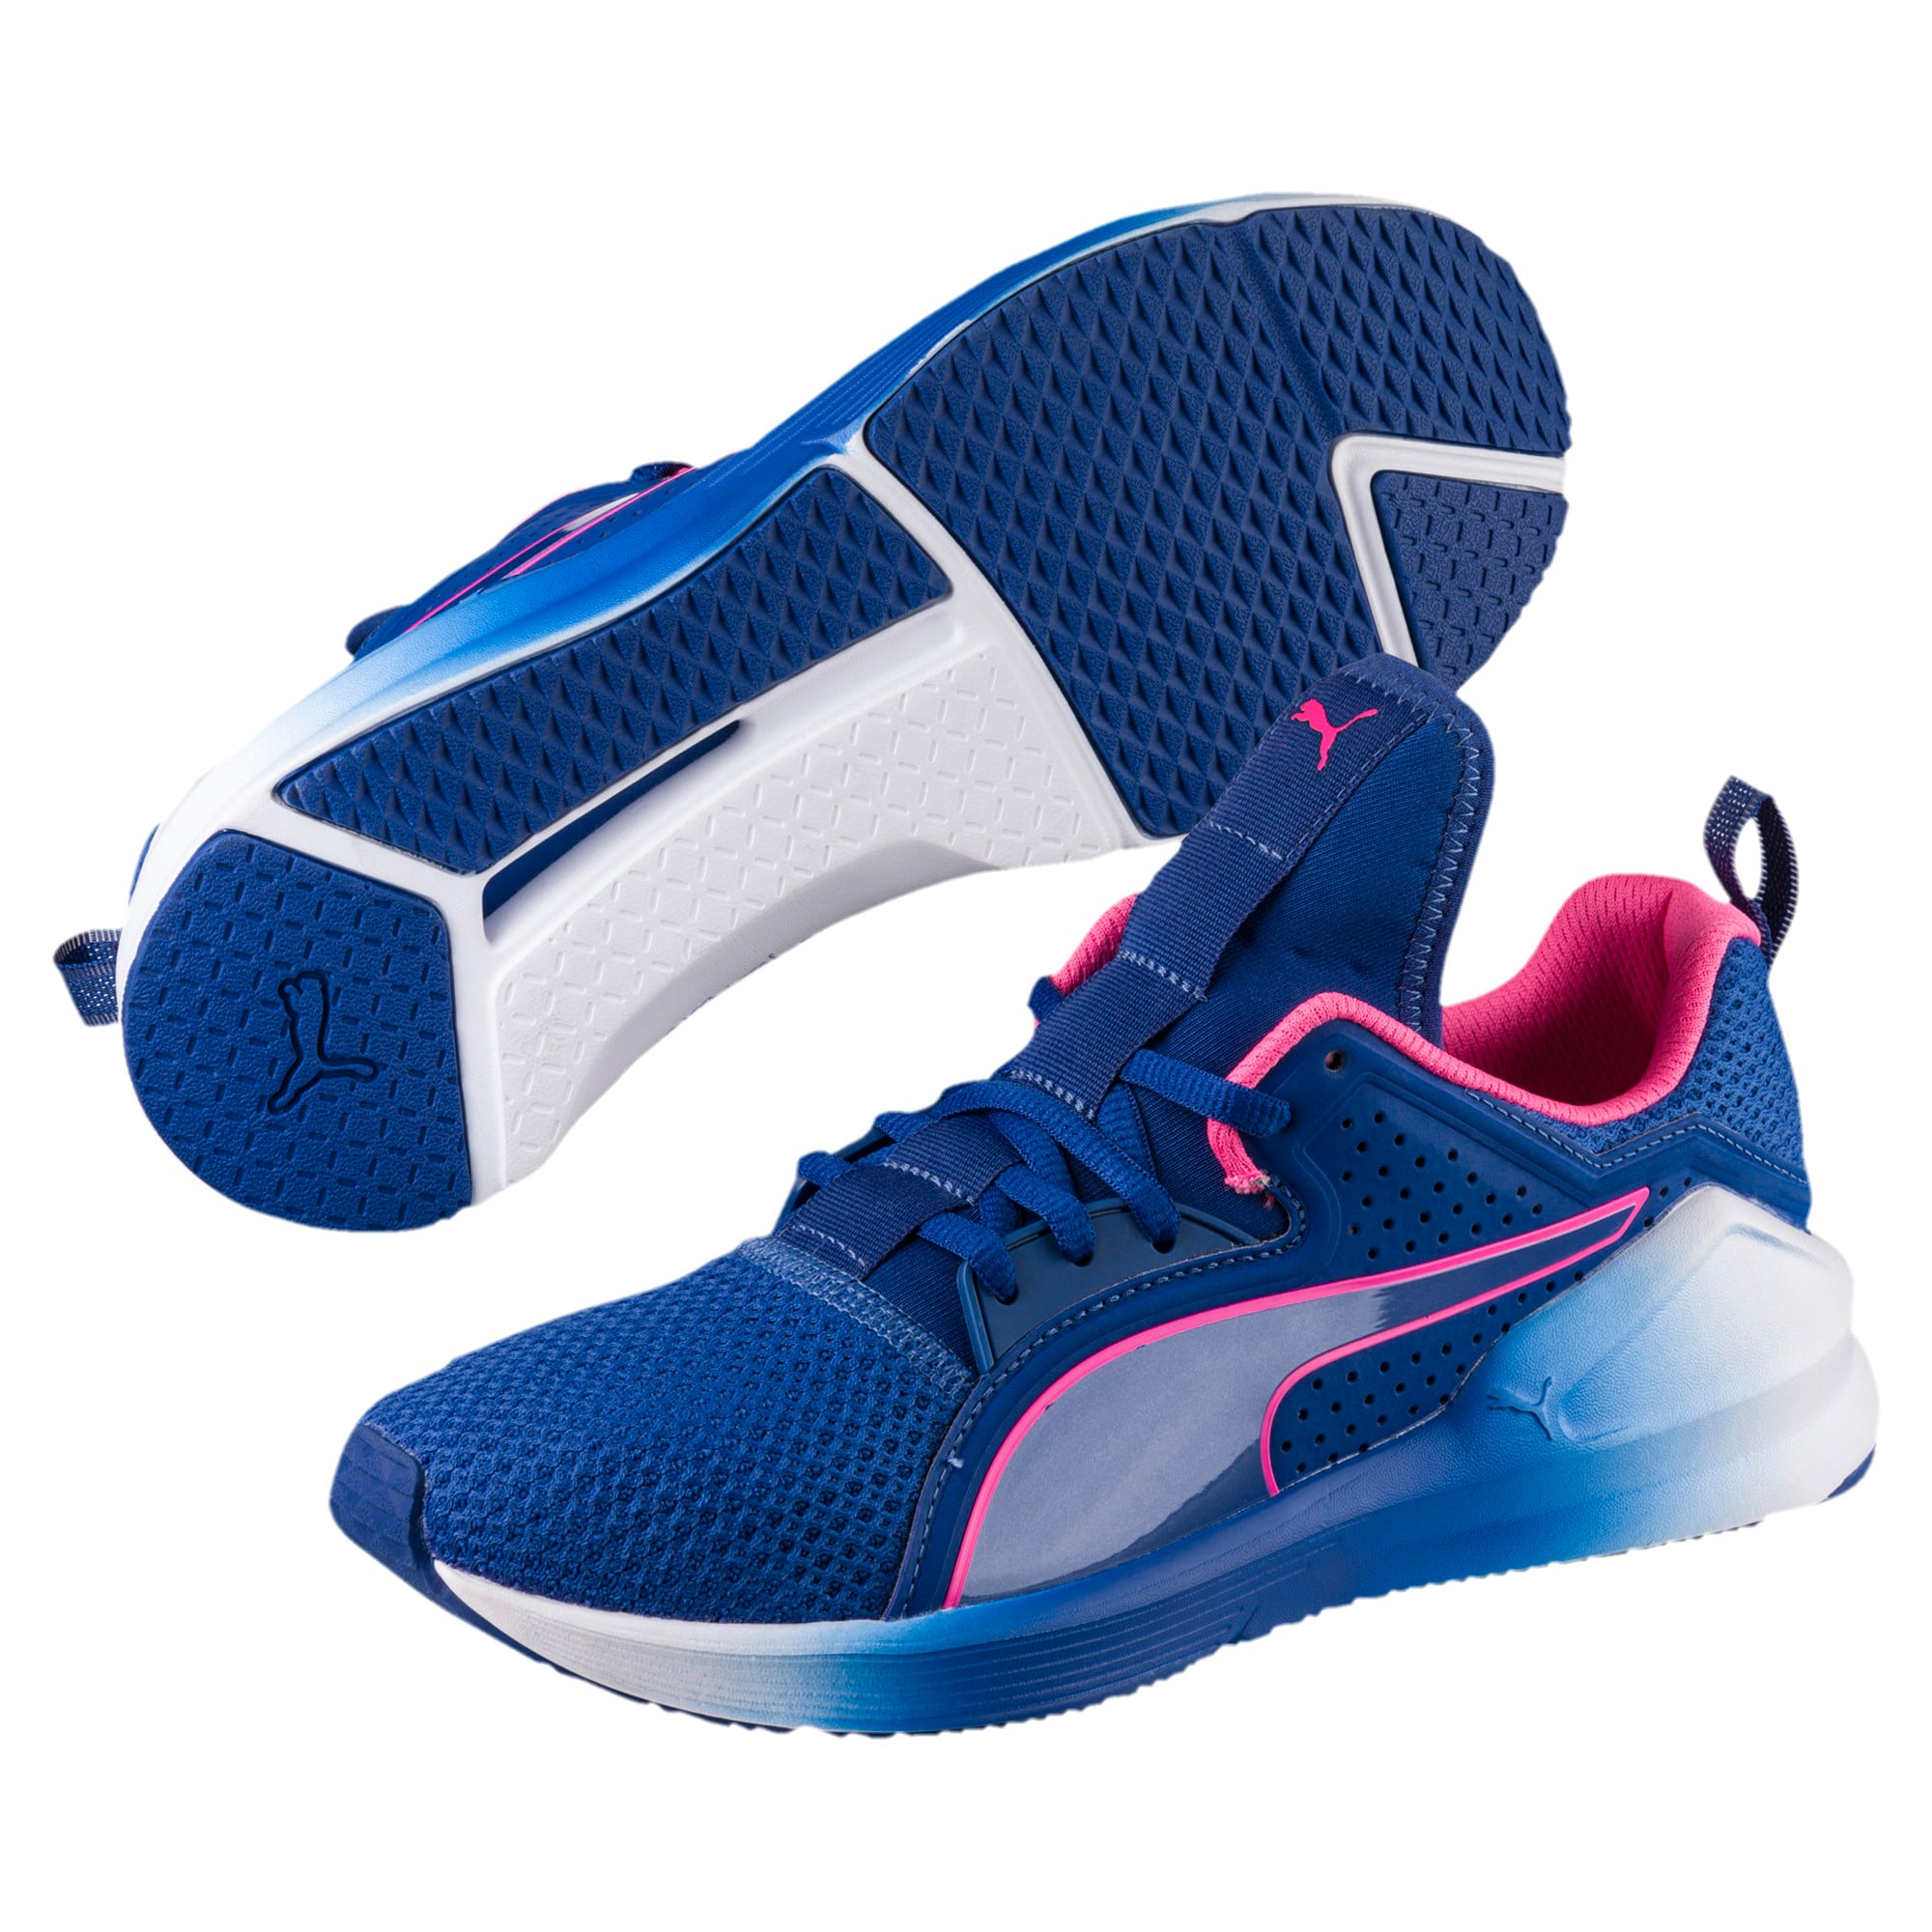 Thumbnail 2 of PUMA Fierce Lace Training Shoes, TRUE BLUE-KNOCKOUT PINK, medium-IND